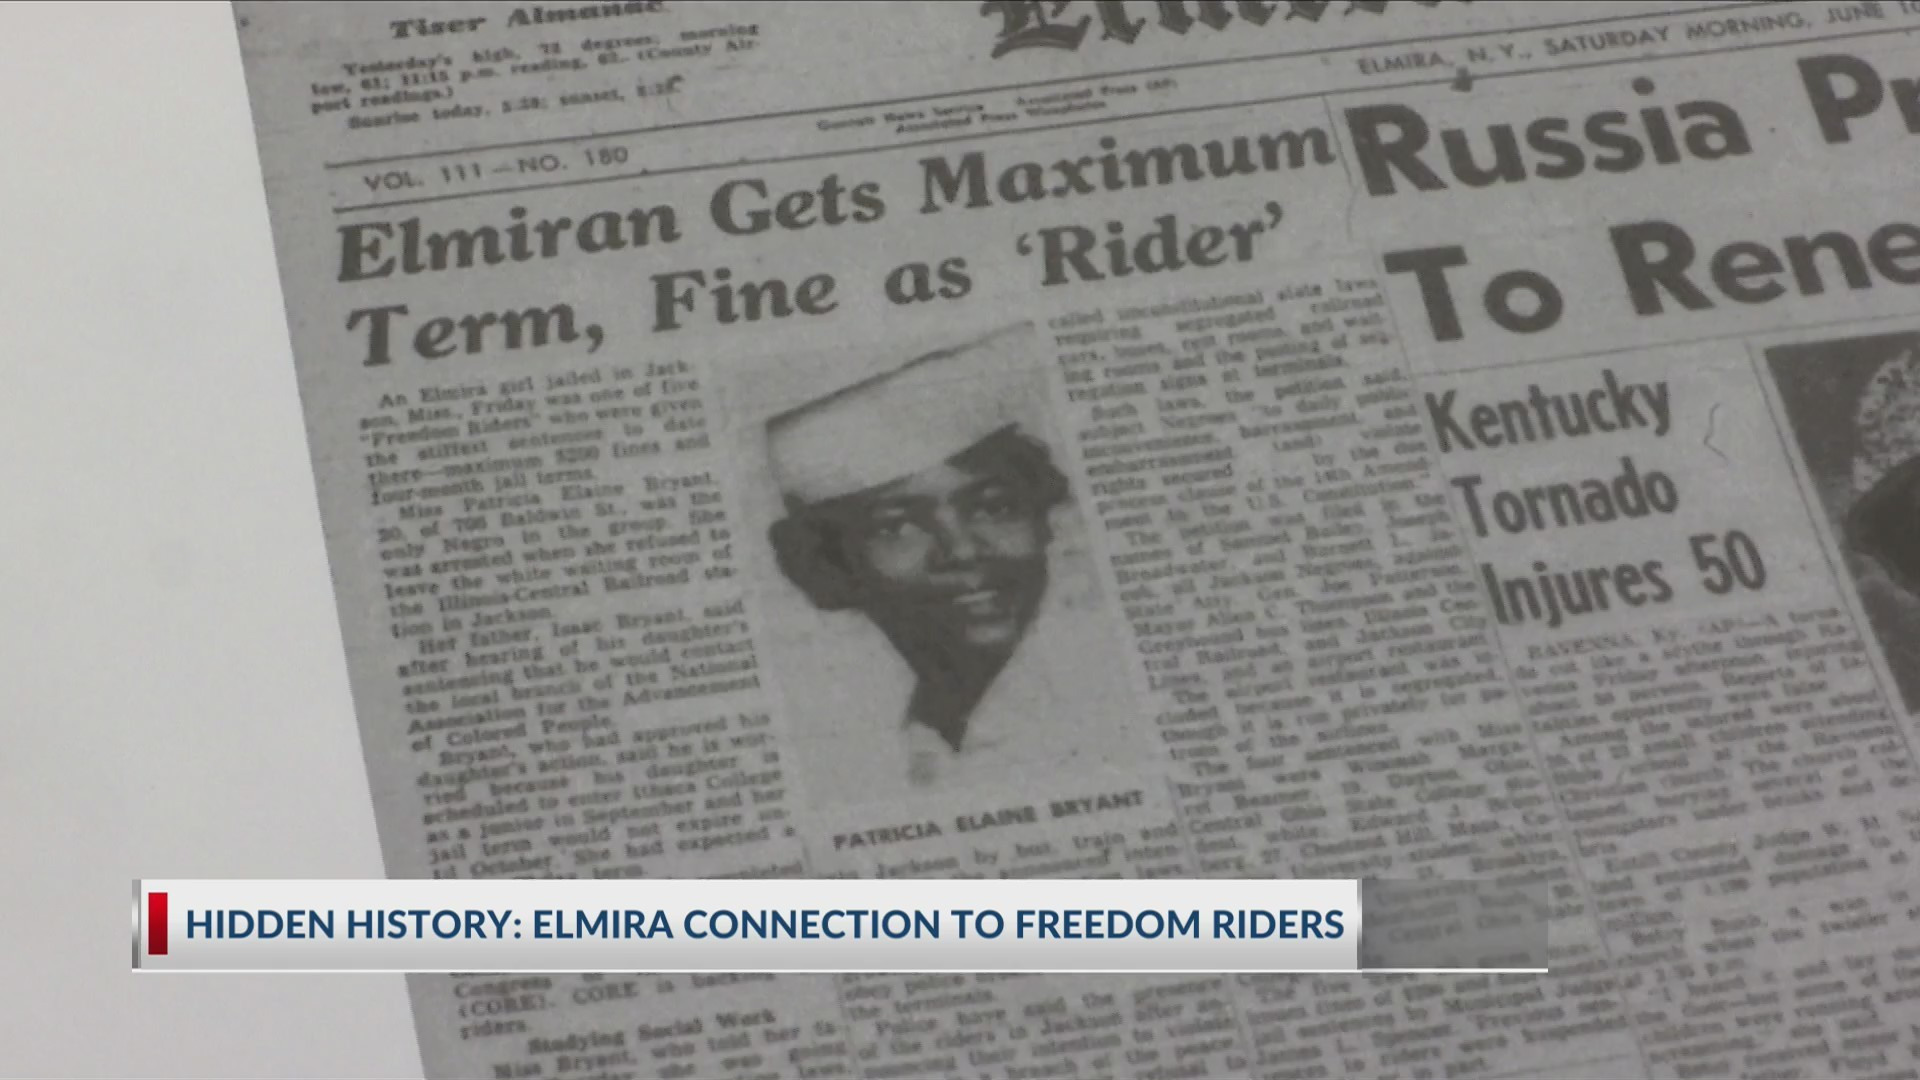 Hidden History: Local connection to Freedom Rider movement